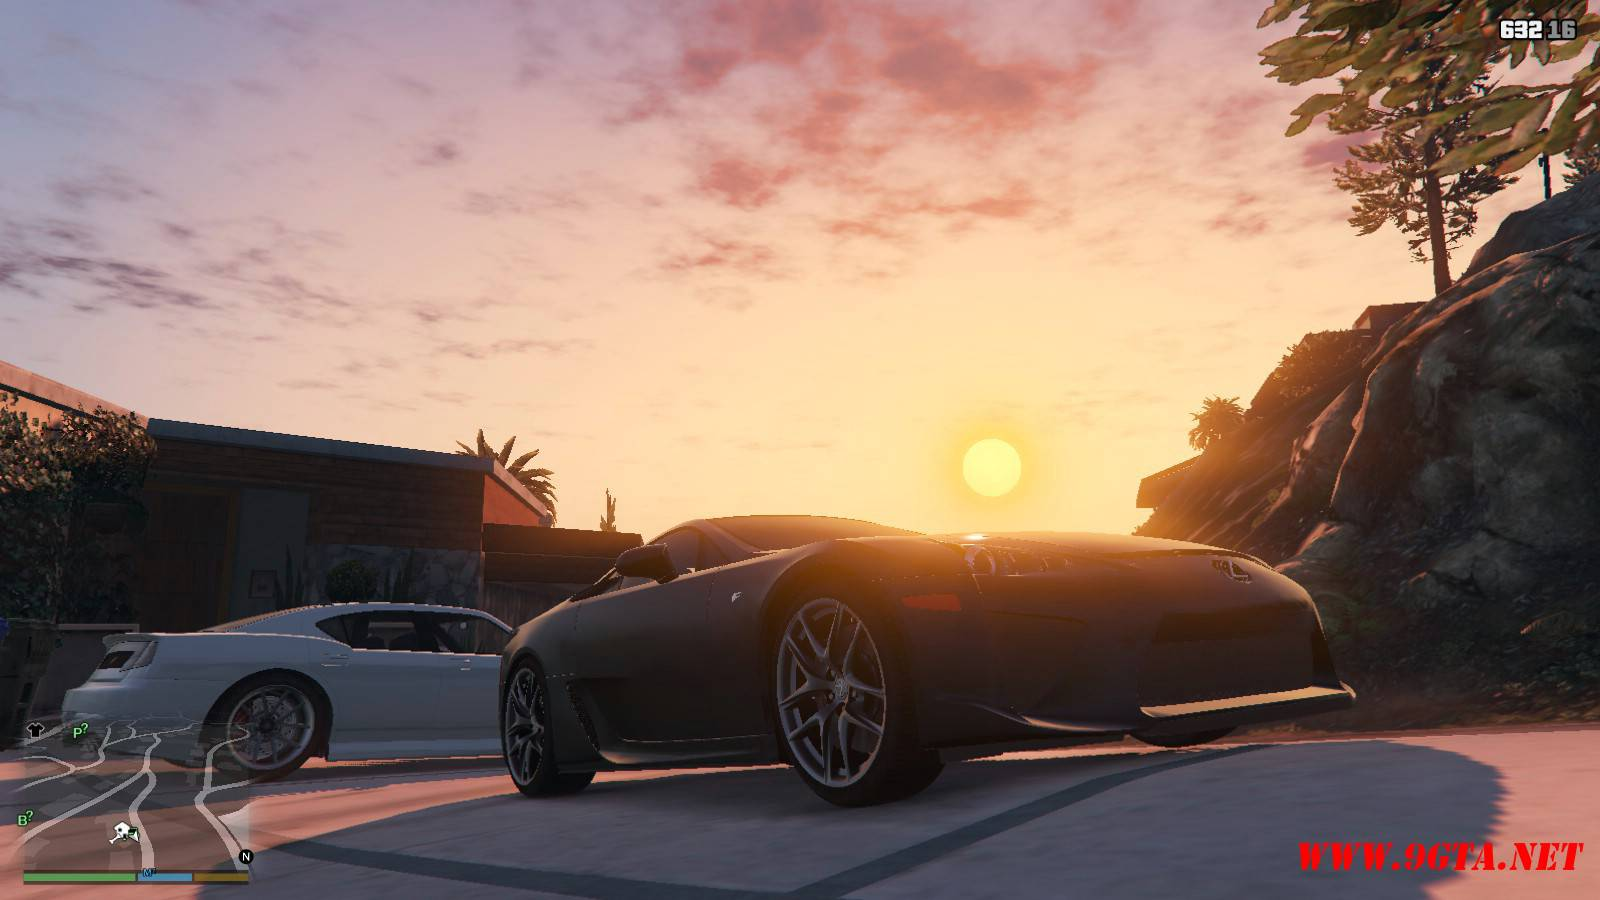 2010 Lexus LFA v2.0 Mod For GTA5 (7)